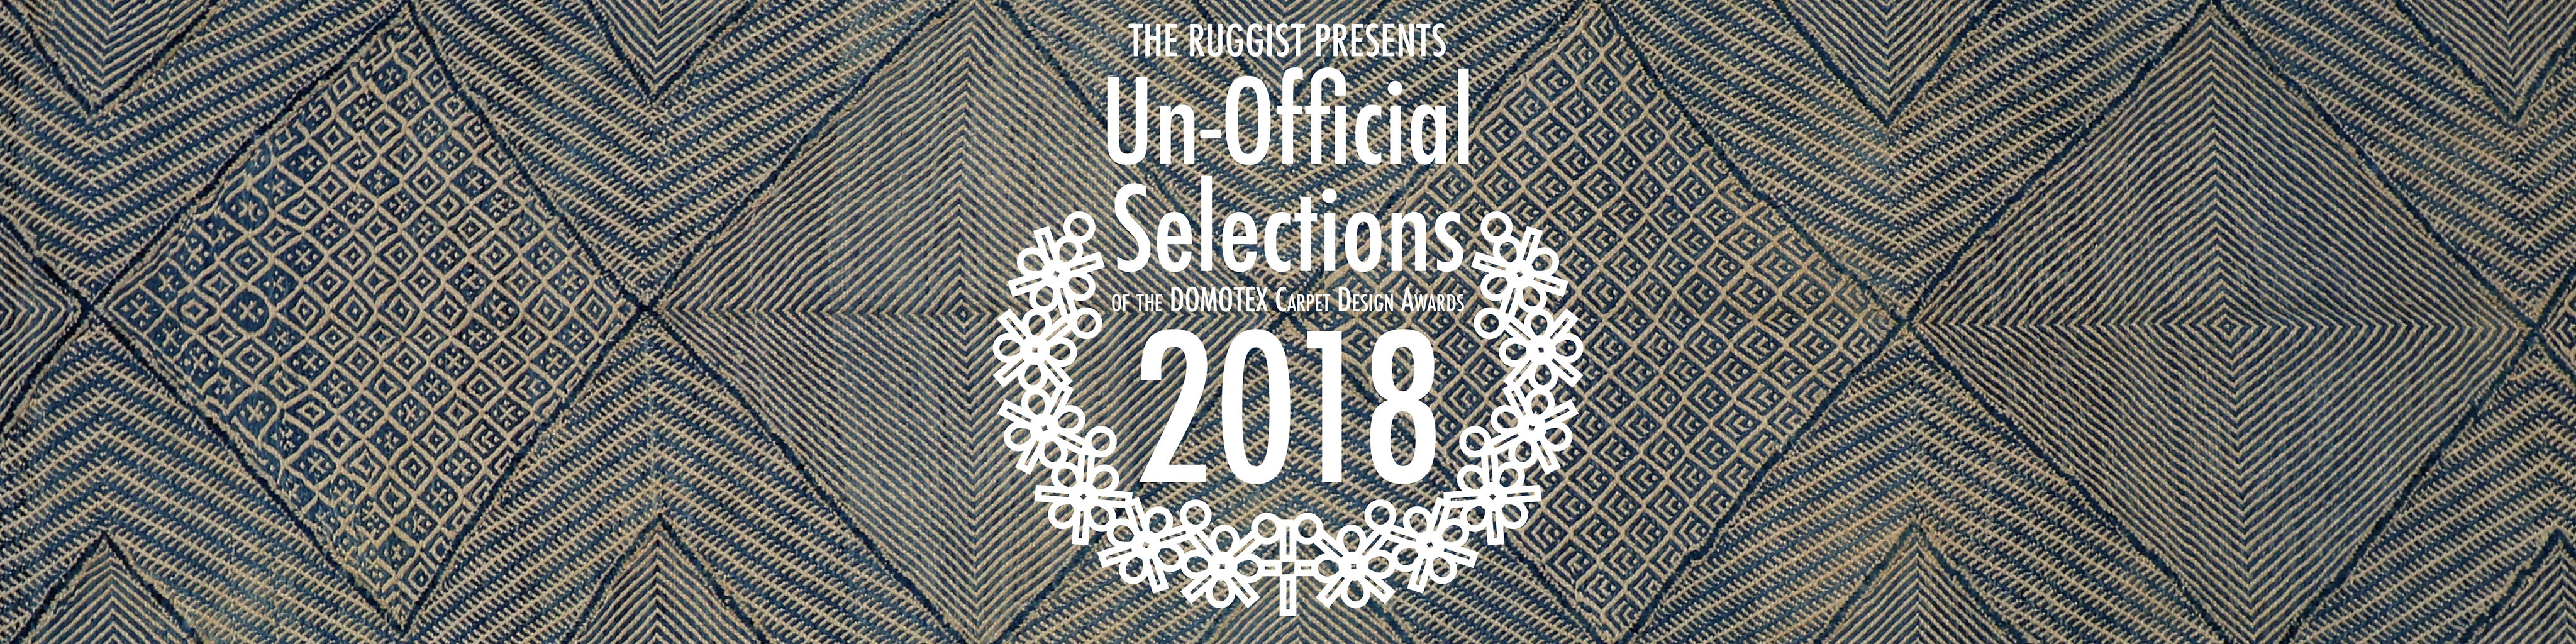 Un-Official Selections 2018 | Domotex